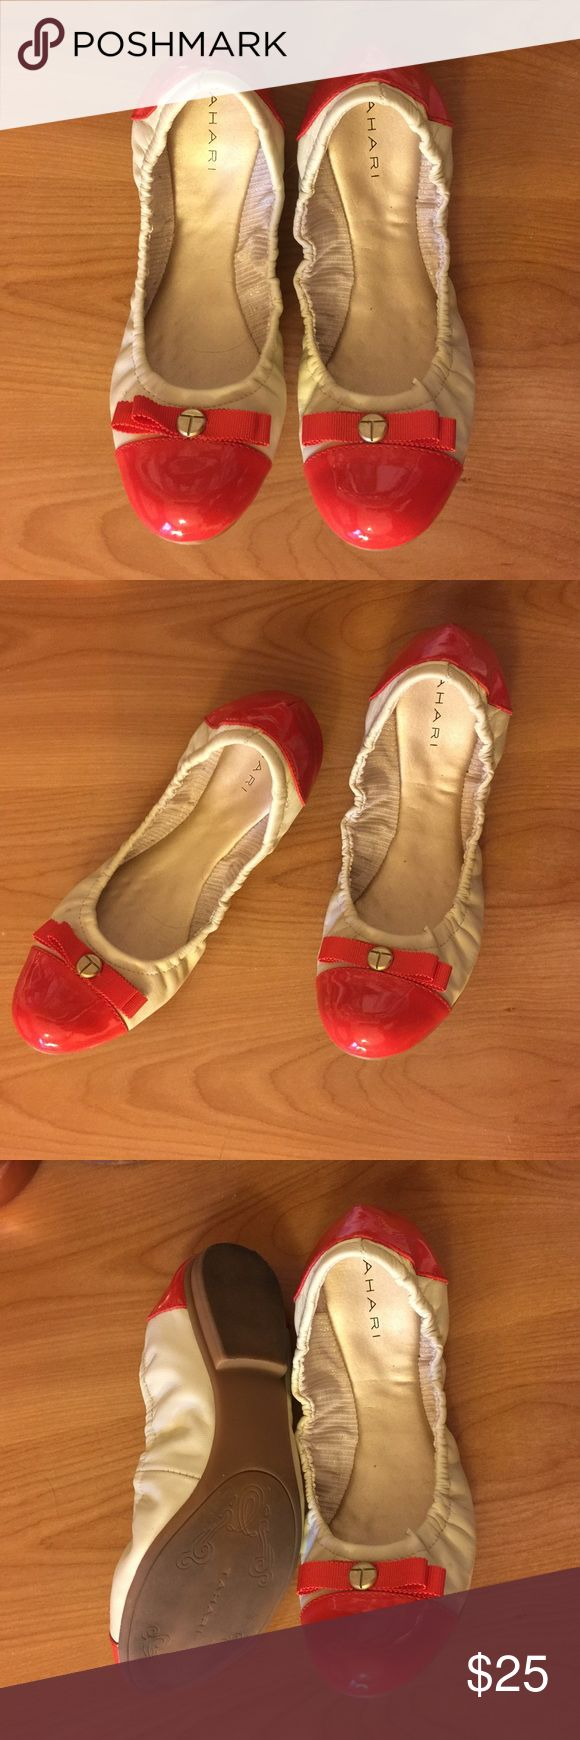 SOLD ON MERC Tahari scrunched flats, with gorgeous red accent. Worn once for two hours for photo shoot- so. Fans new condition! Has cushion filling to mold to your foot and make the comfiest fit! Tahari Shoes Flats & Loafers